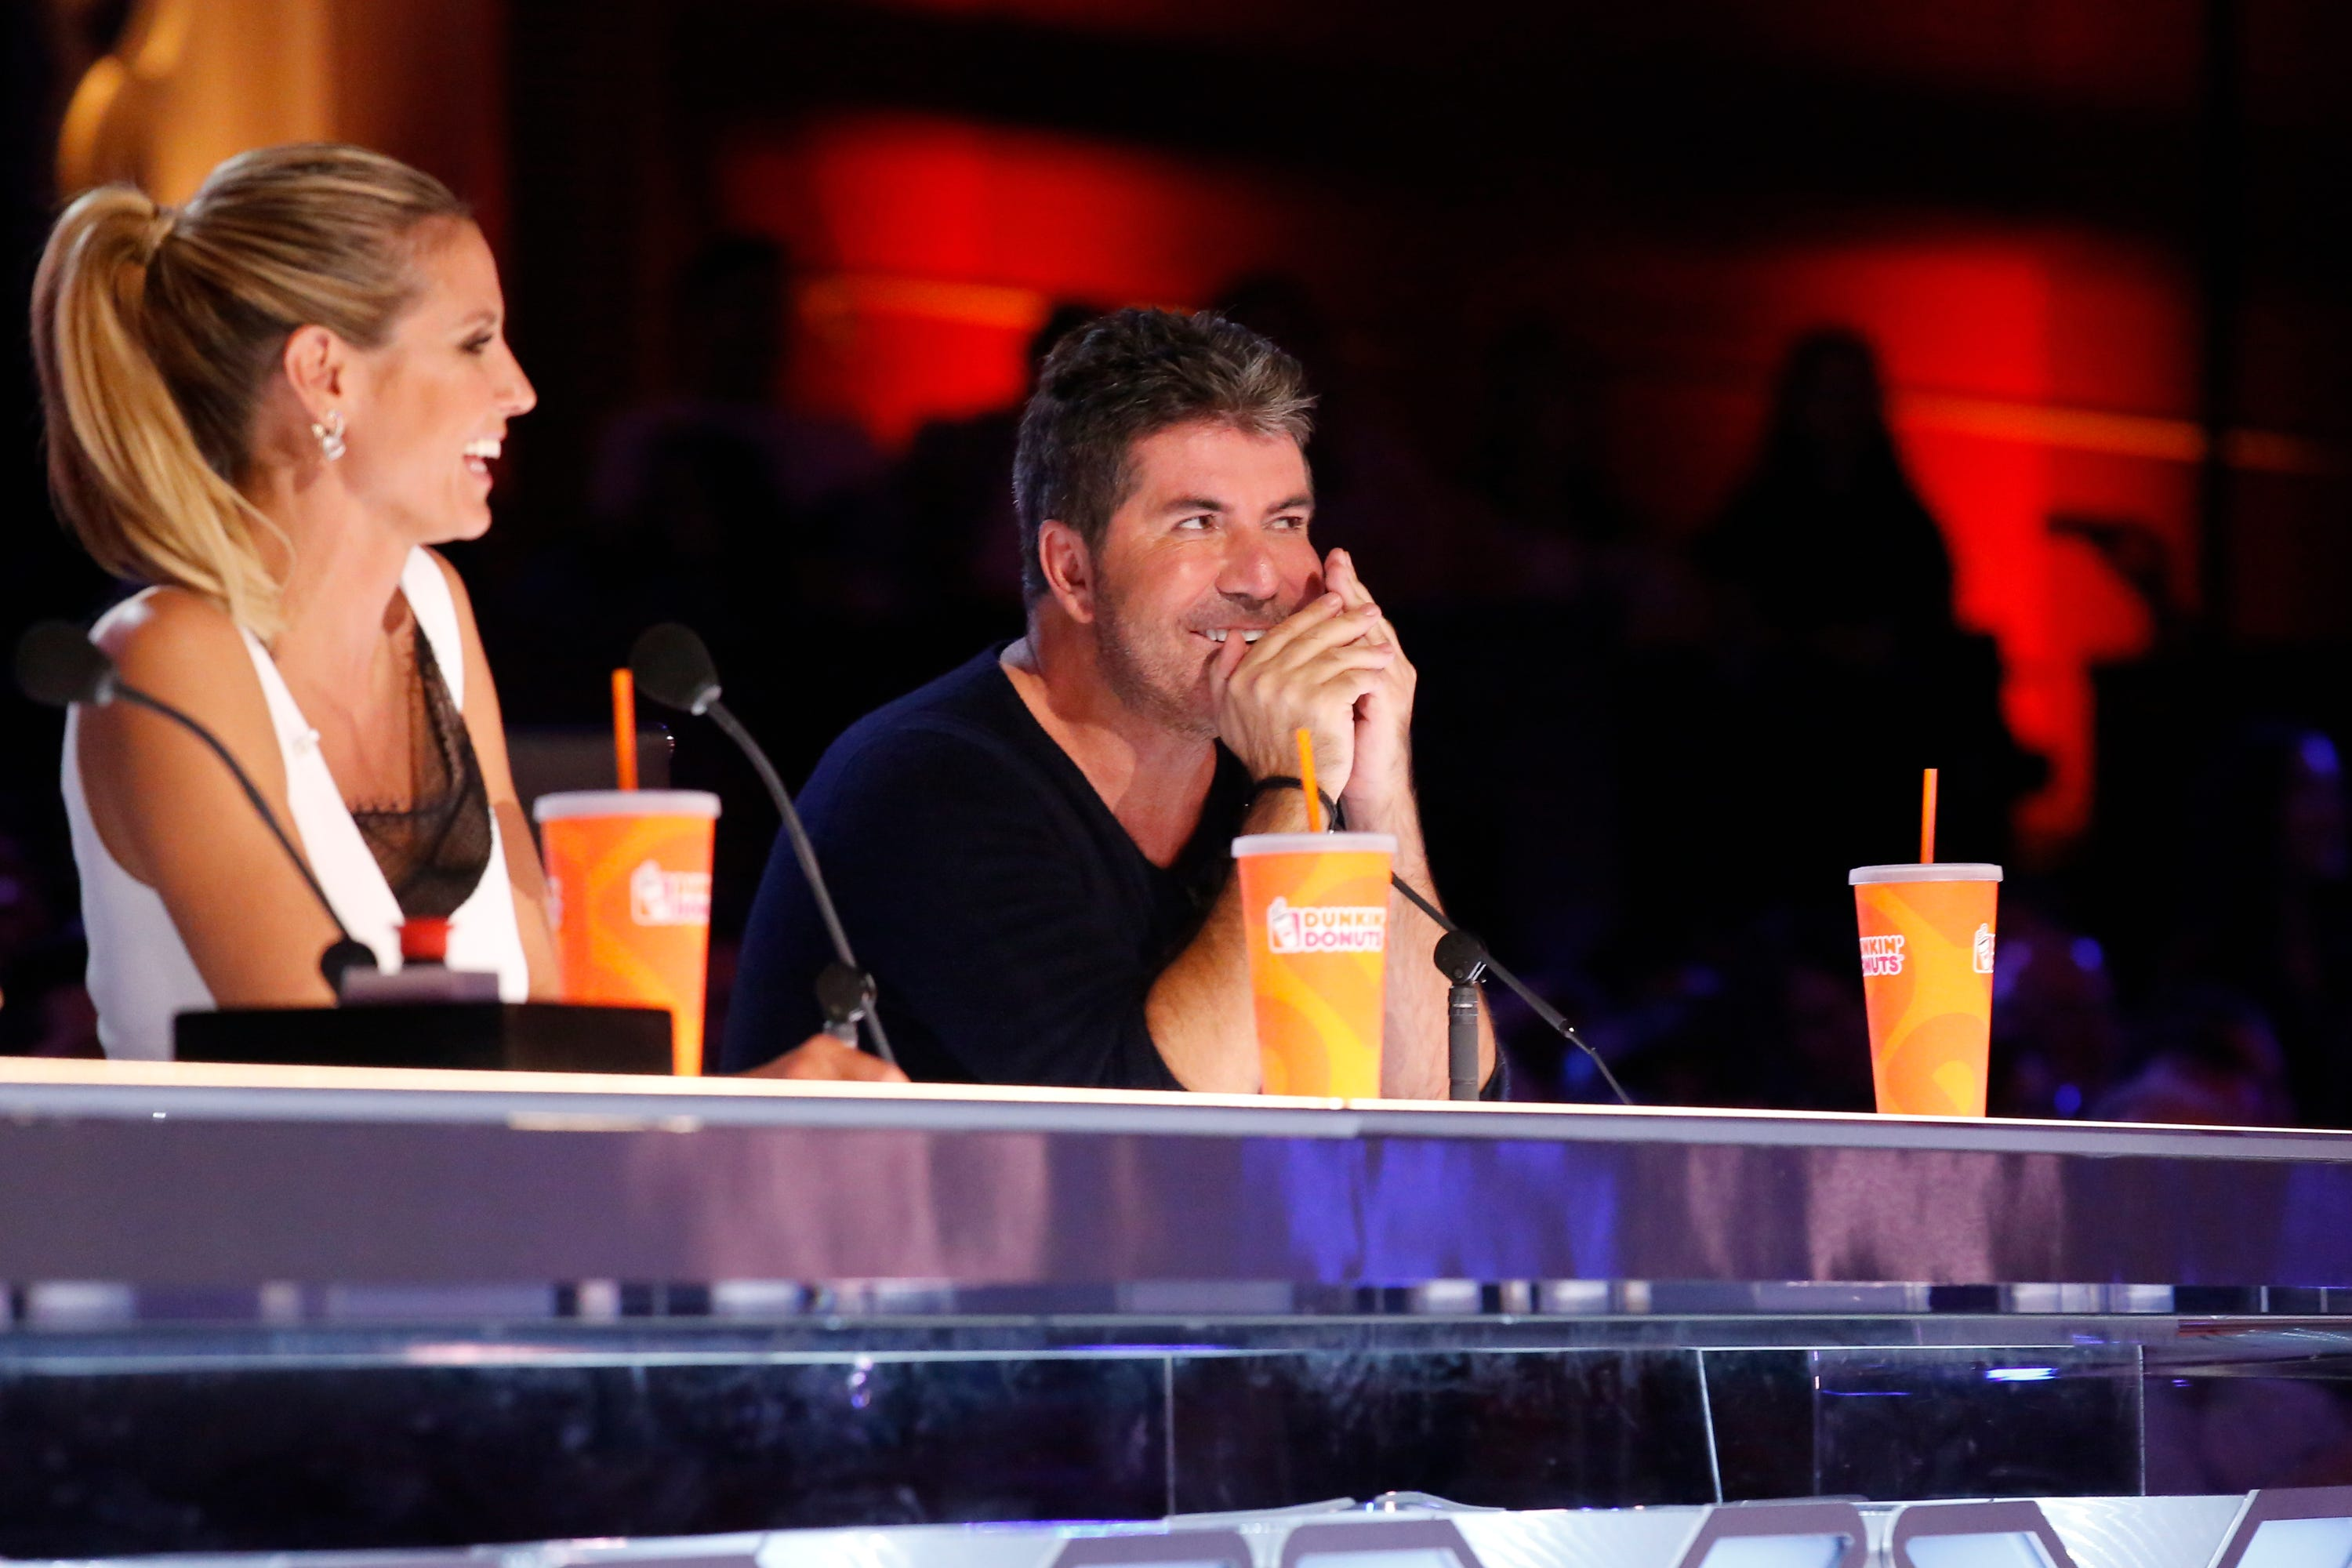 Watch this deaf singer win Simon Cowell's heart on 'America's Got Talent'